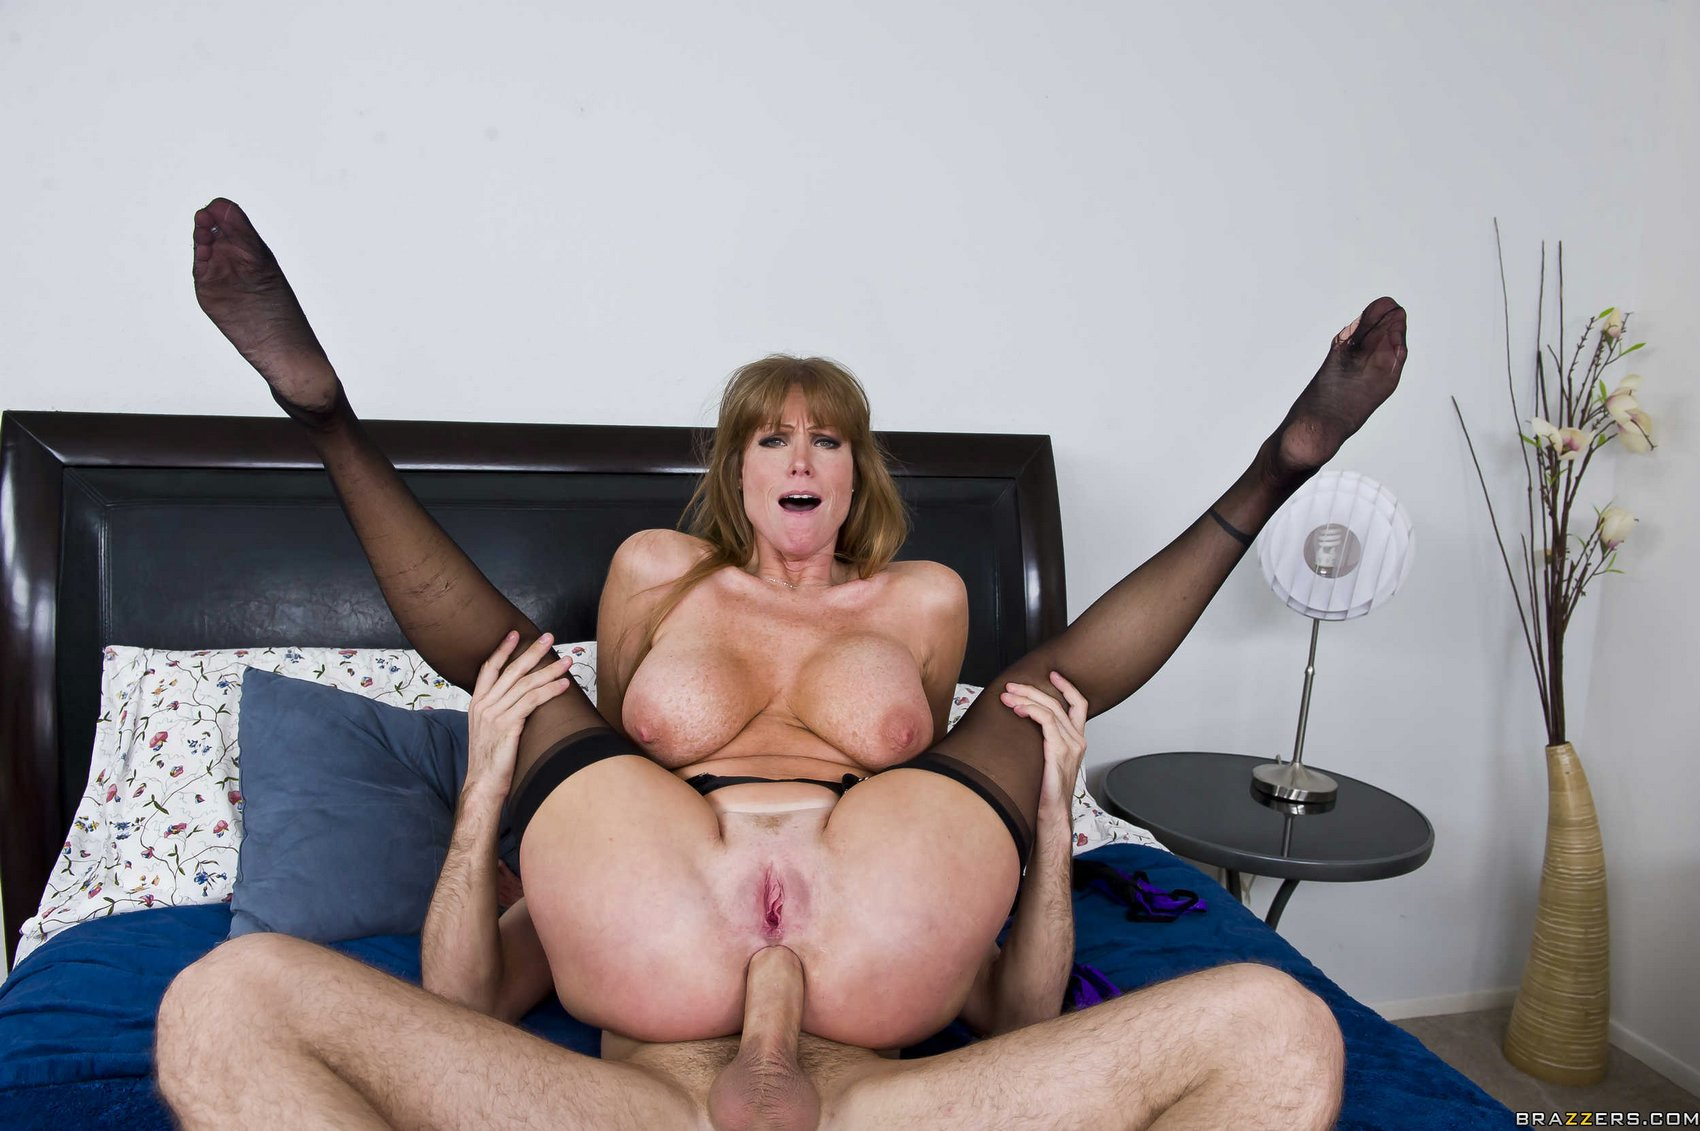 Please Mom Show Me How To Fuck, Free Mom Mobile Galery Hd Porn